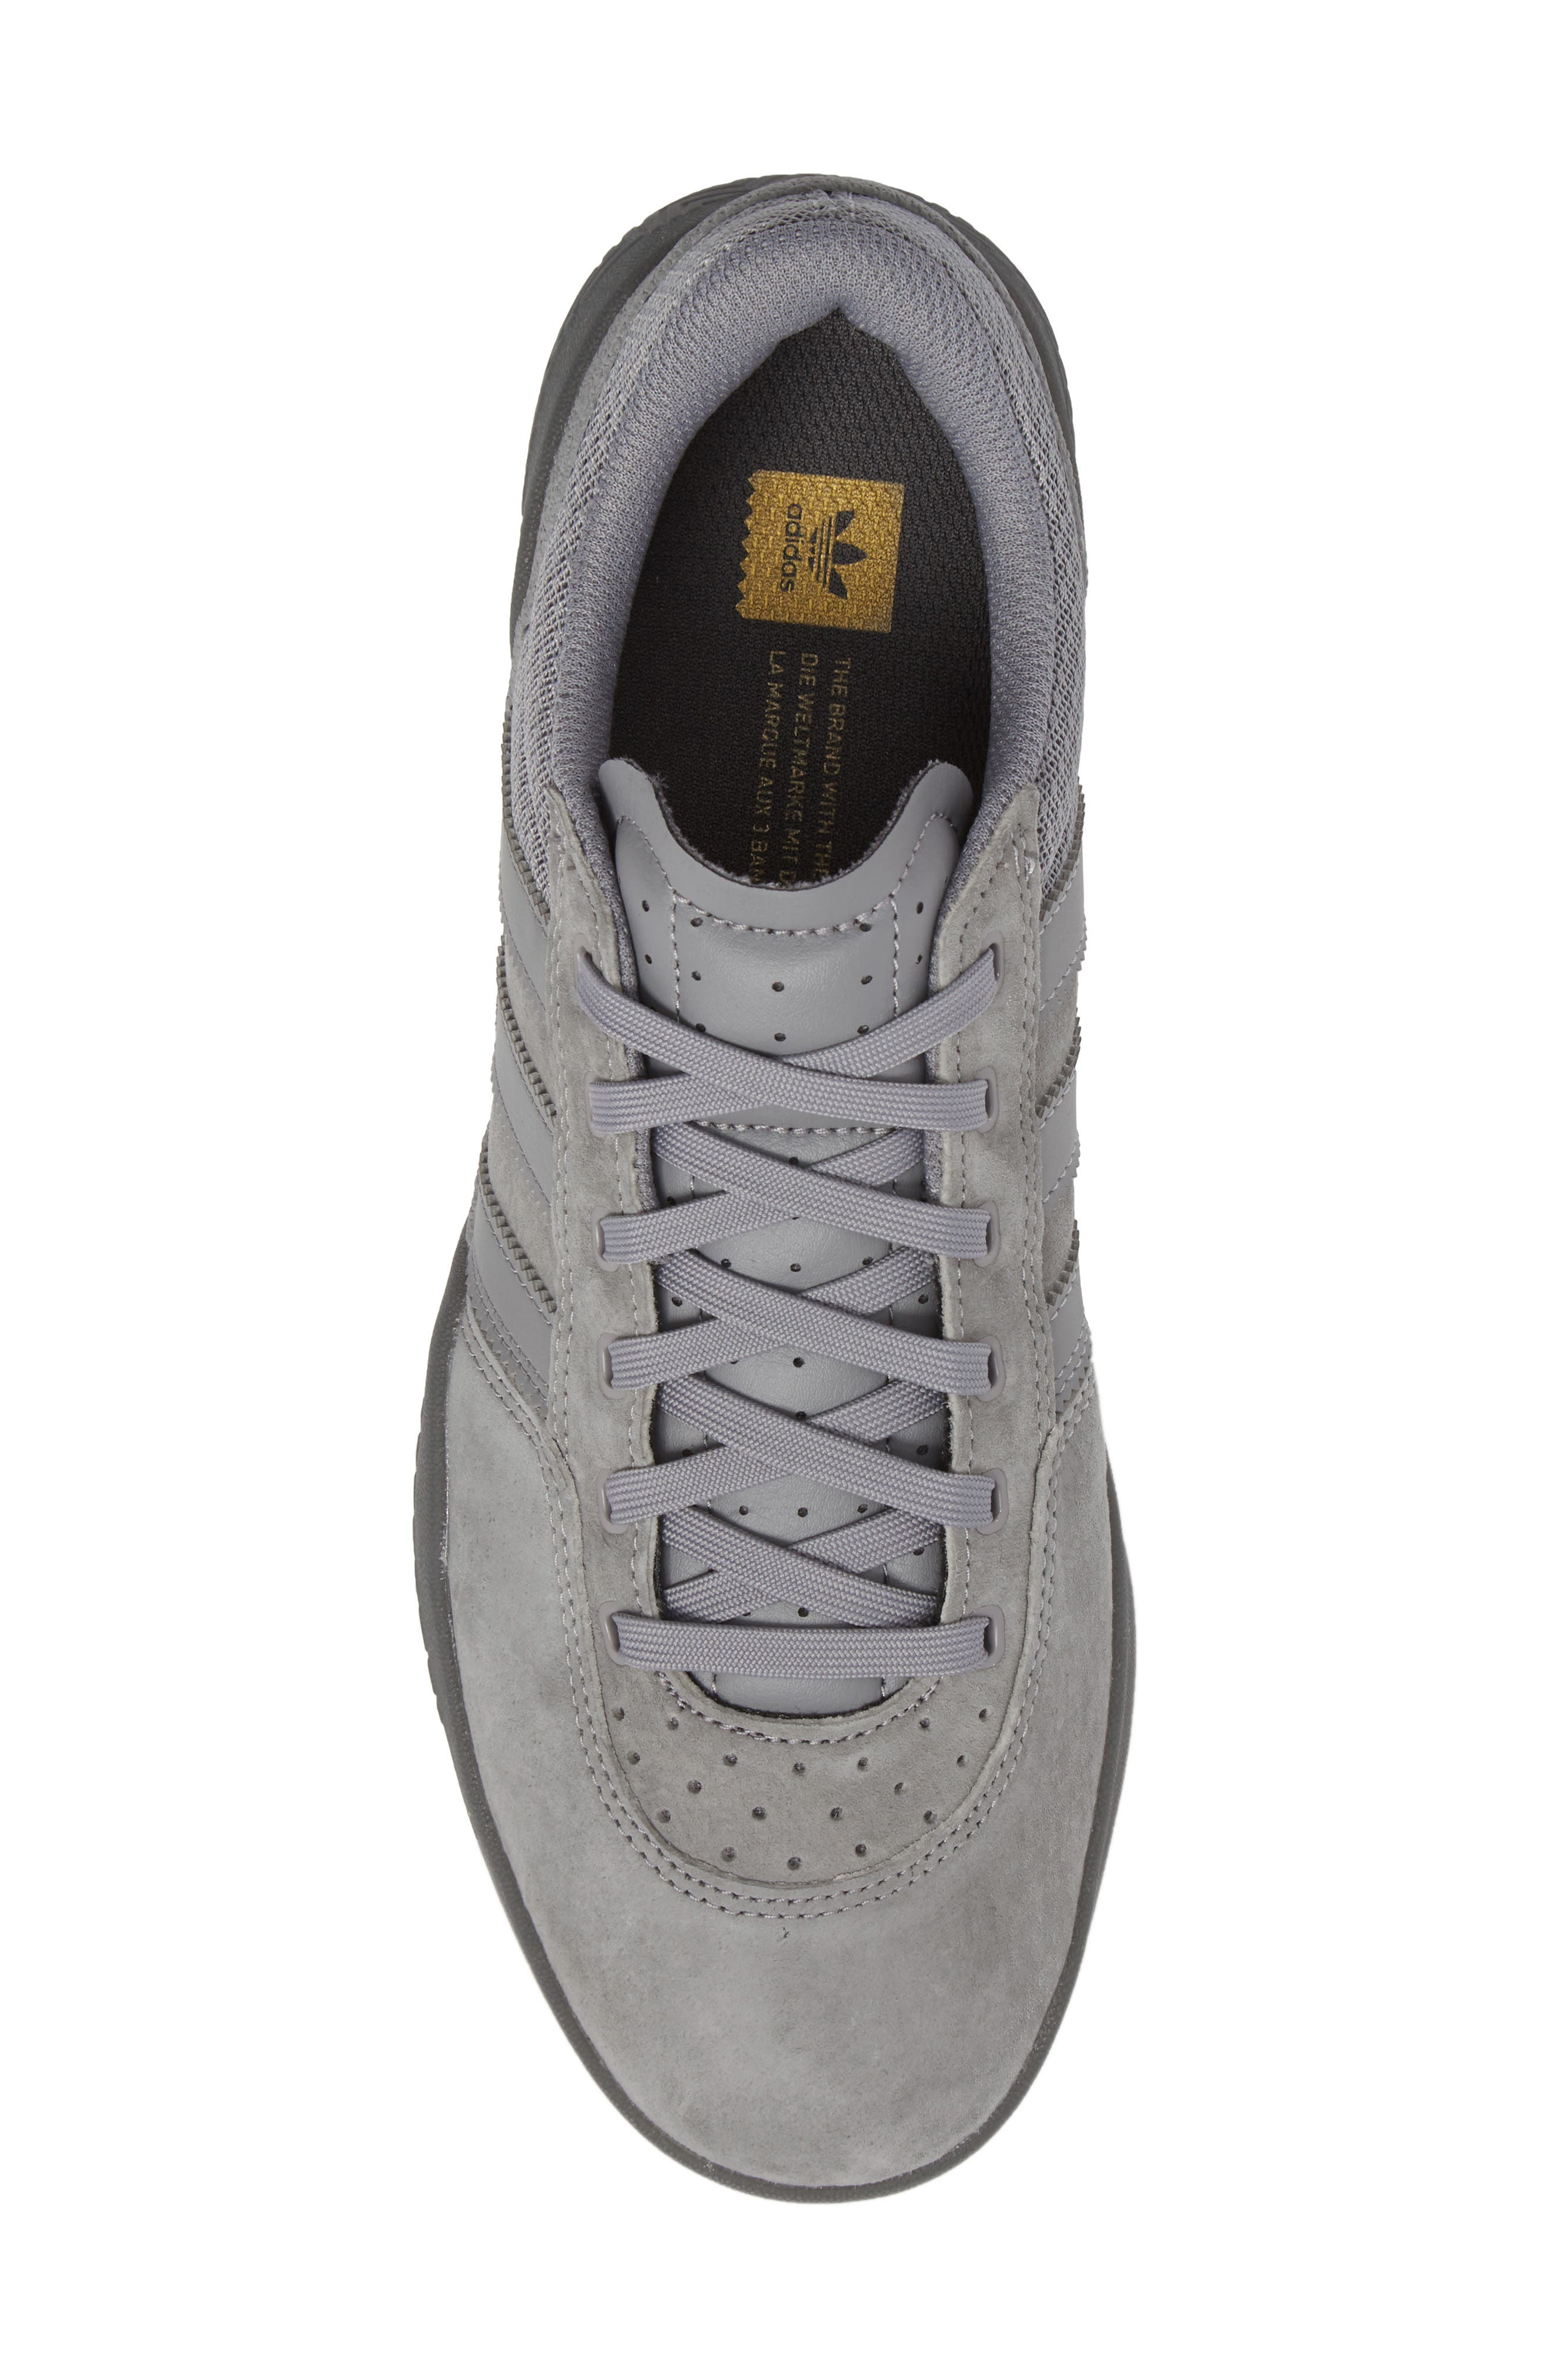 City Cup Sneaker,                             Alternate thumbnail 5, color,                             Grey/ Gold